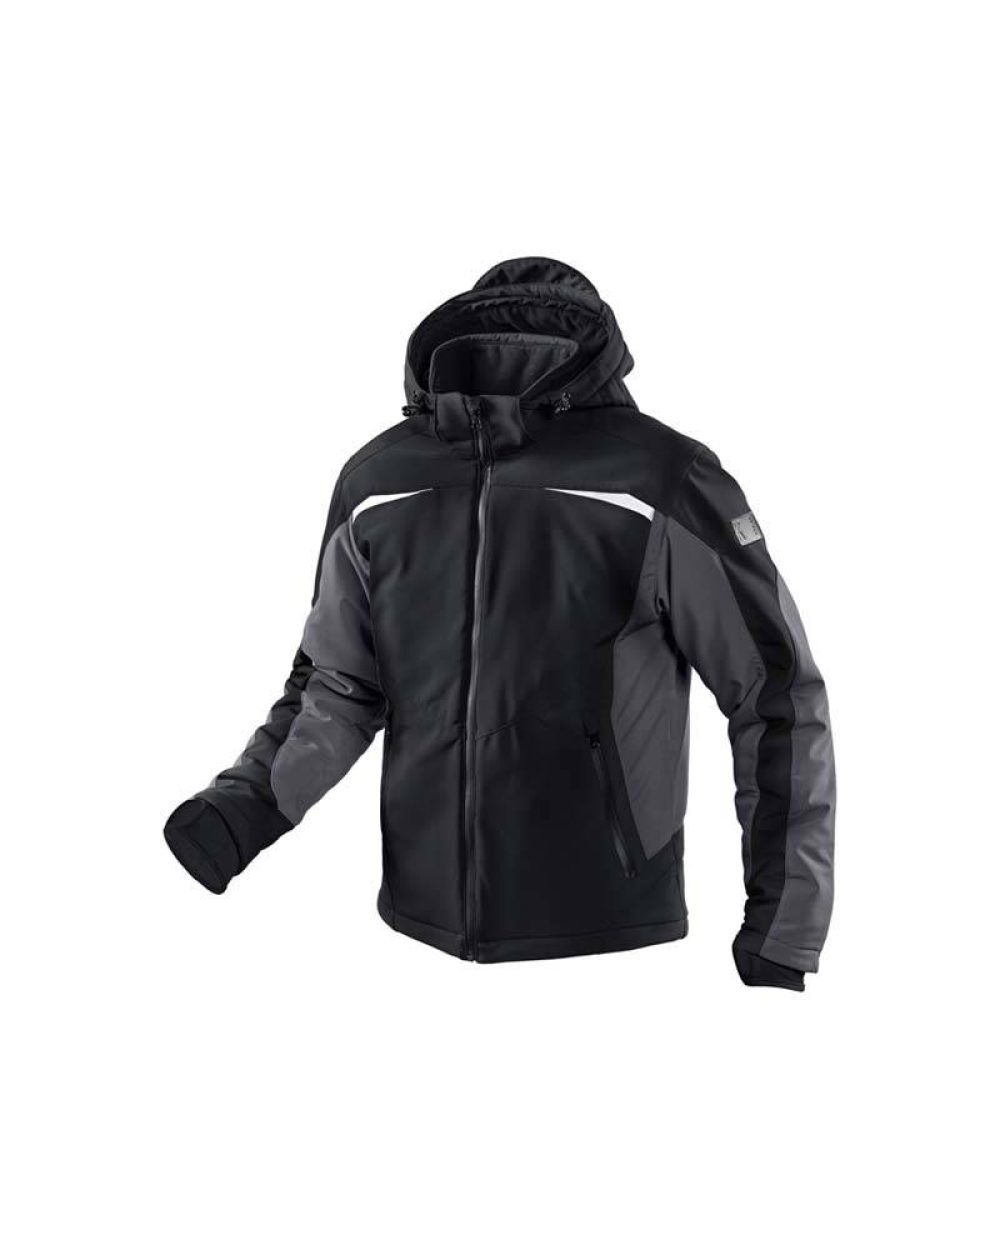 kuebler-weather-jacke-1041_7322-9997_61